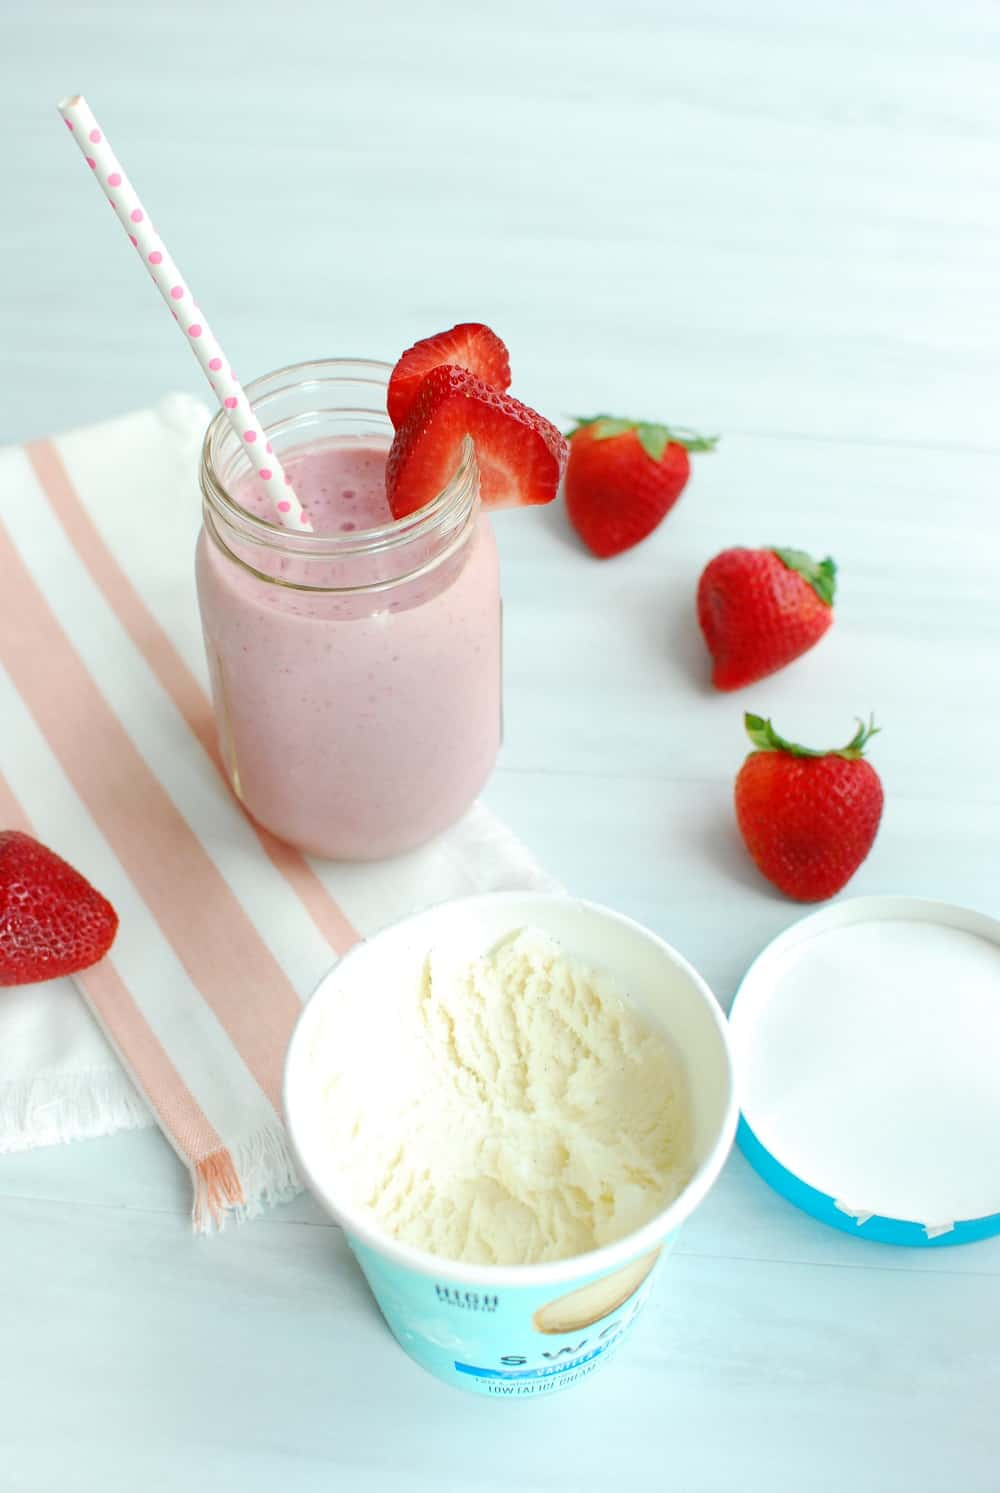 Open pint of ice cream next to a healthy strawberry milkshake